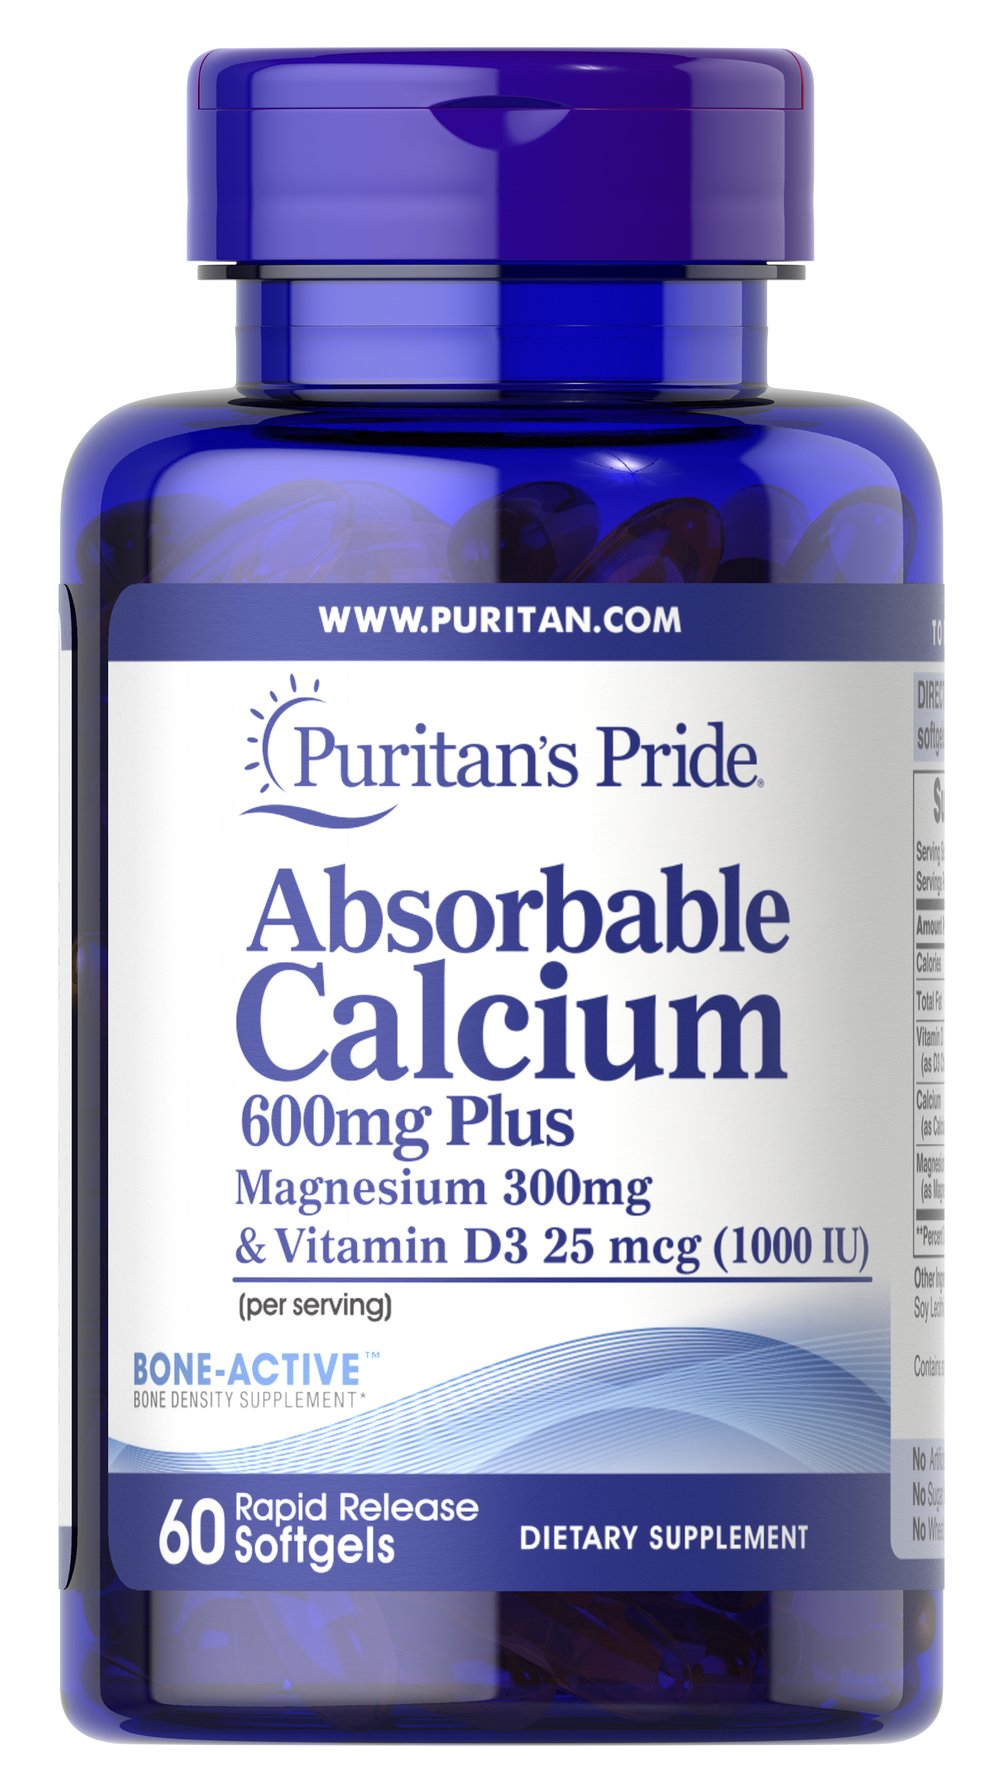 Absorbable Calcium 600mg plus Magnesium 300mg & Vitamin D 1000iu <p>Bone-Active™ Bone Density Supplement</p><p>At any age, bone health is important. Puritan's Pride Absorbable Calcium with Magnesium & Vitamin D contains Bone-Active™ bone density supplement.** Formulated to help maintain bone strength and density, this supplement aims to help support optimal bone health.** Calcium is the primary mineral responsible for strong bones and teeth.** Magnesium is essen